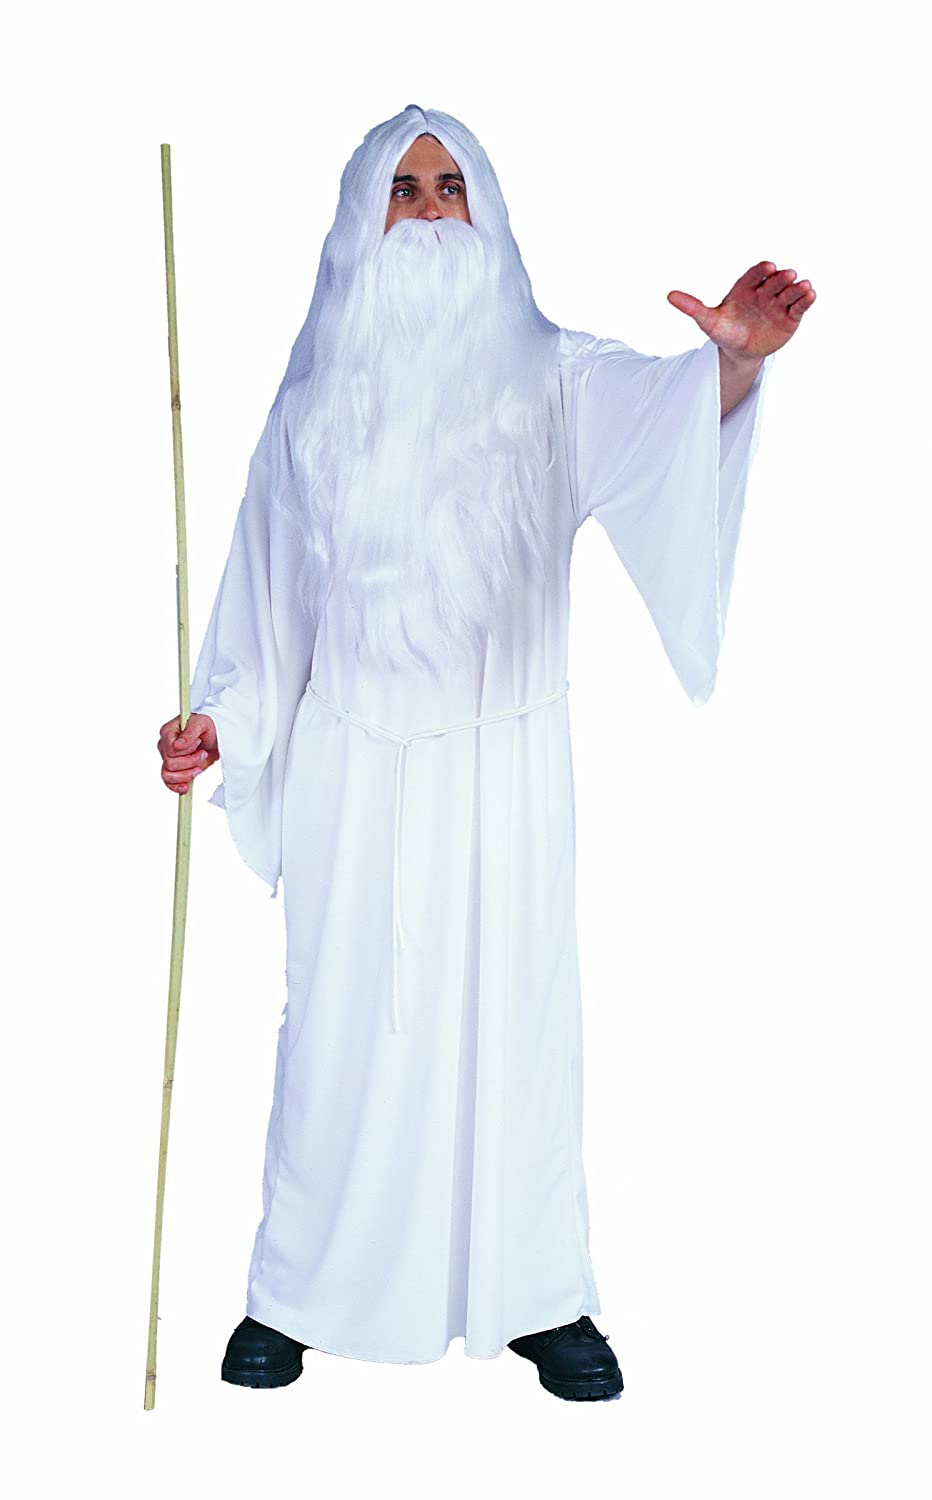 RG Costumes Men's White Wizard adult costume tunic Gandalf lord of the rings